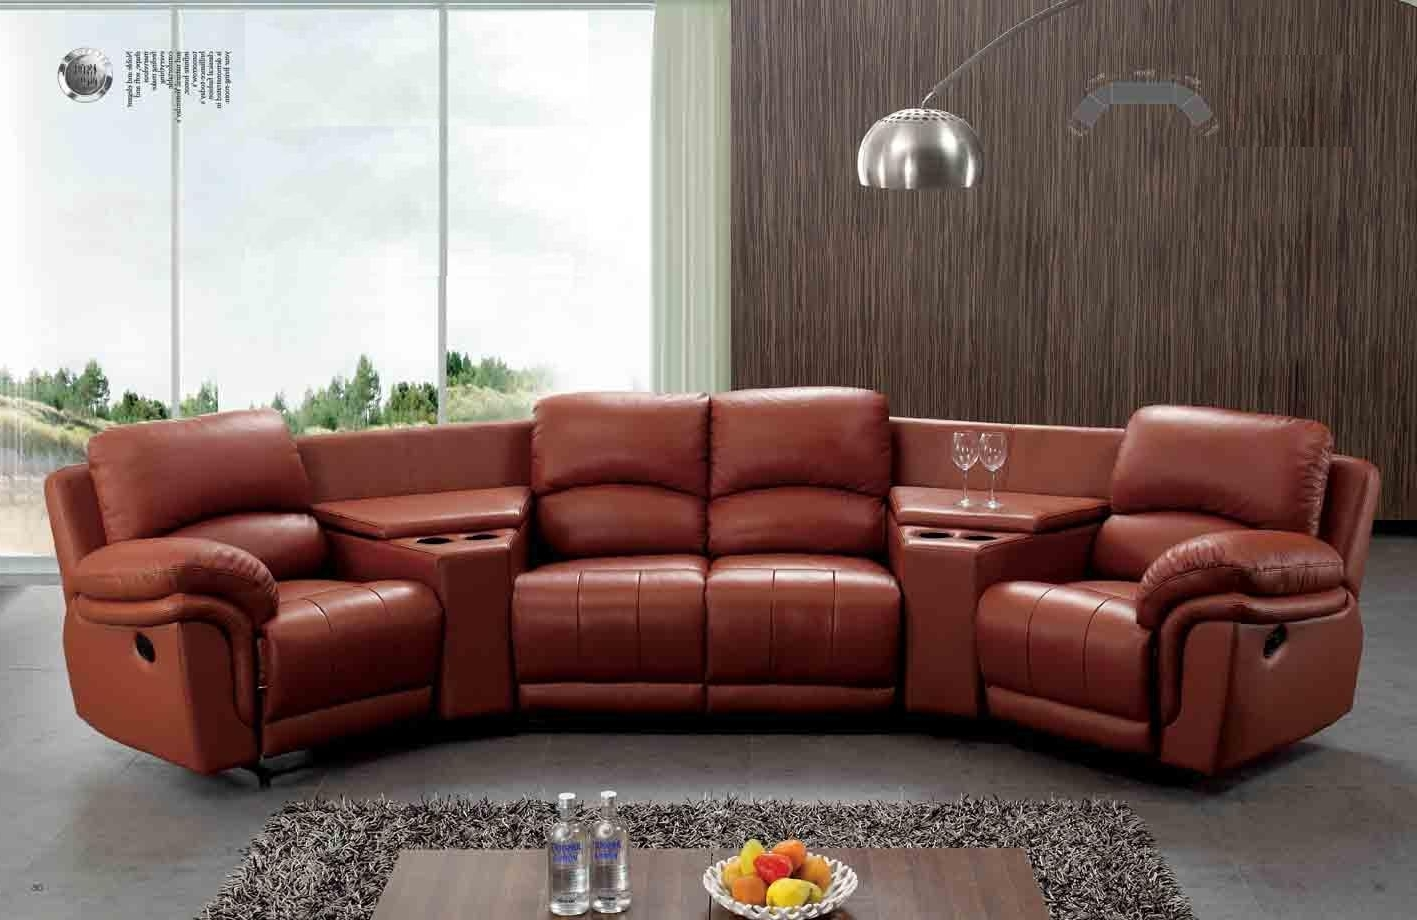 Recliner Sofas 4U (View 5 of 15)